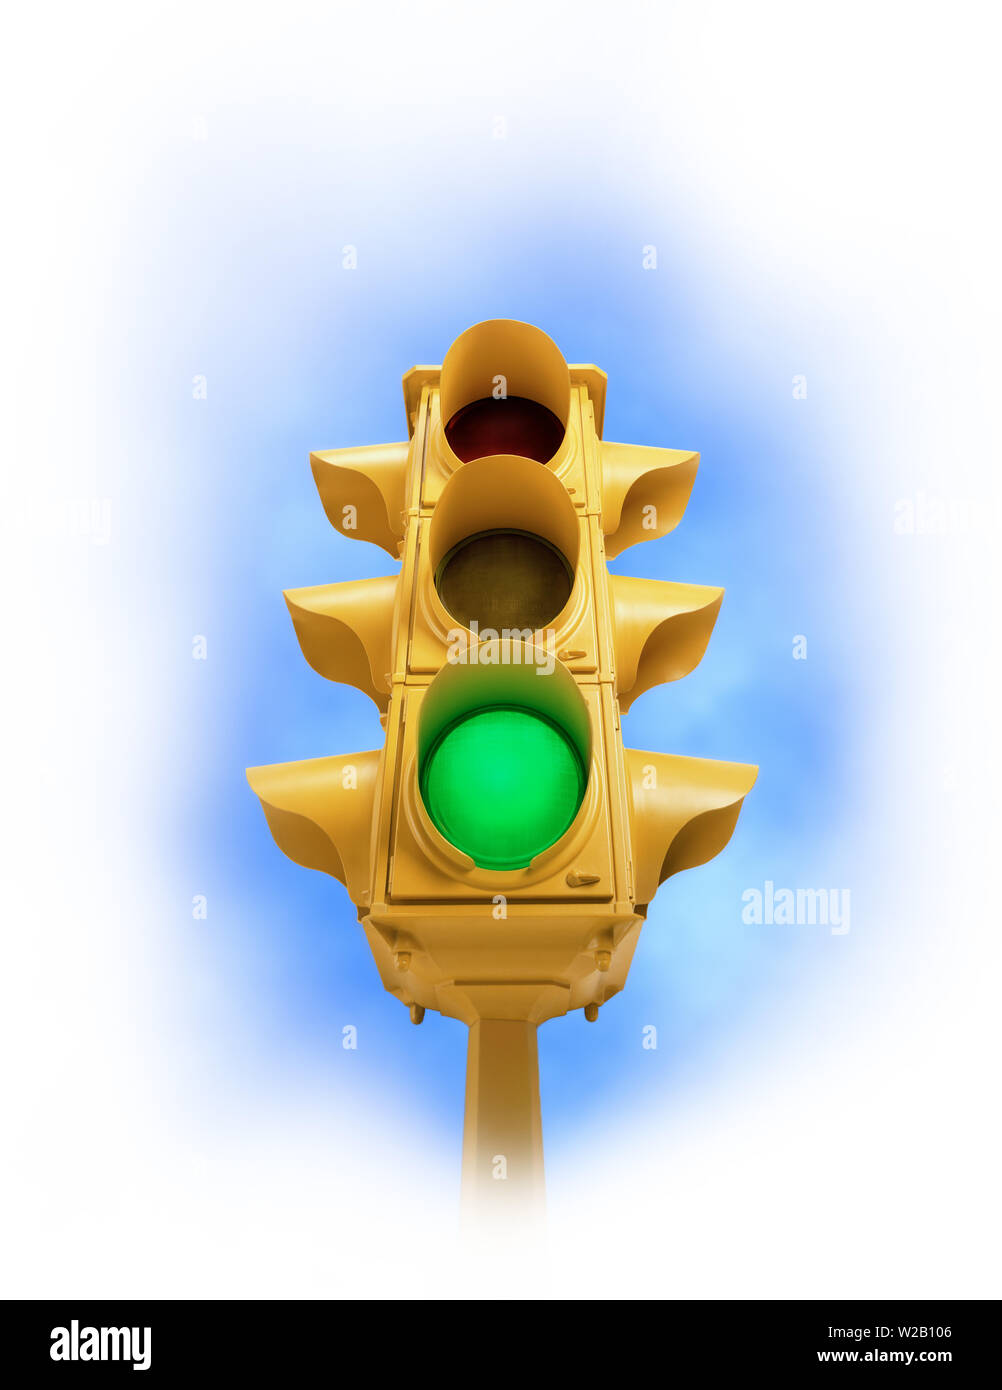 Upward view of tall vintage yellow traffic signal with green light on white vignette background - Stock Image